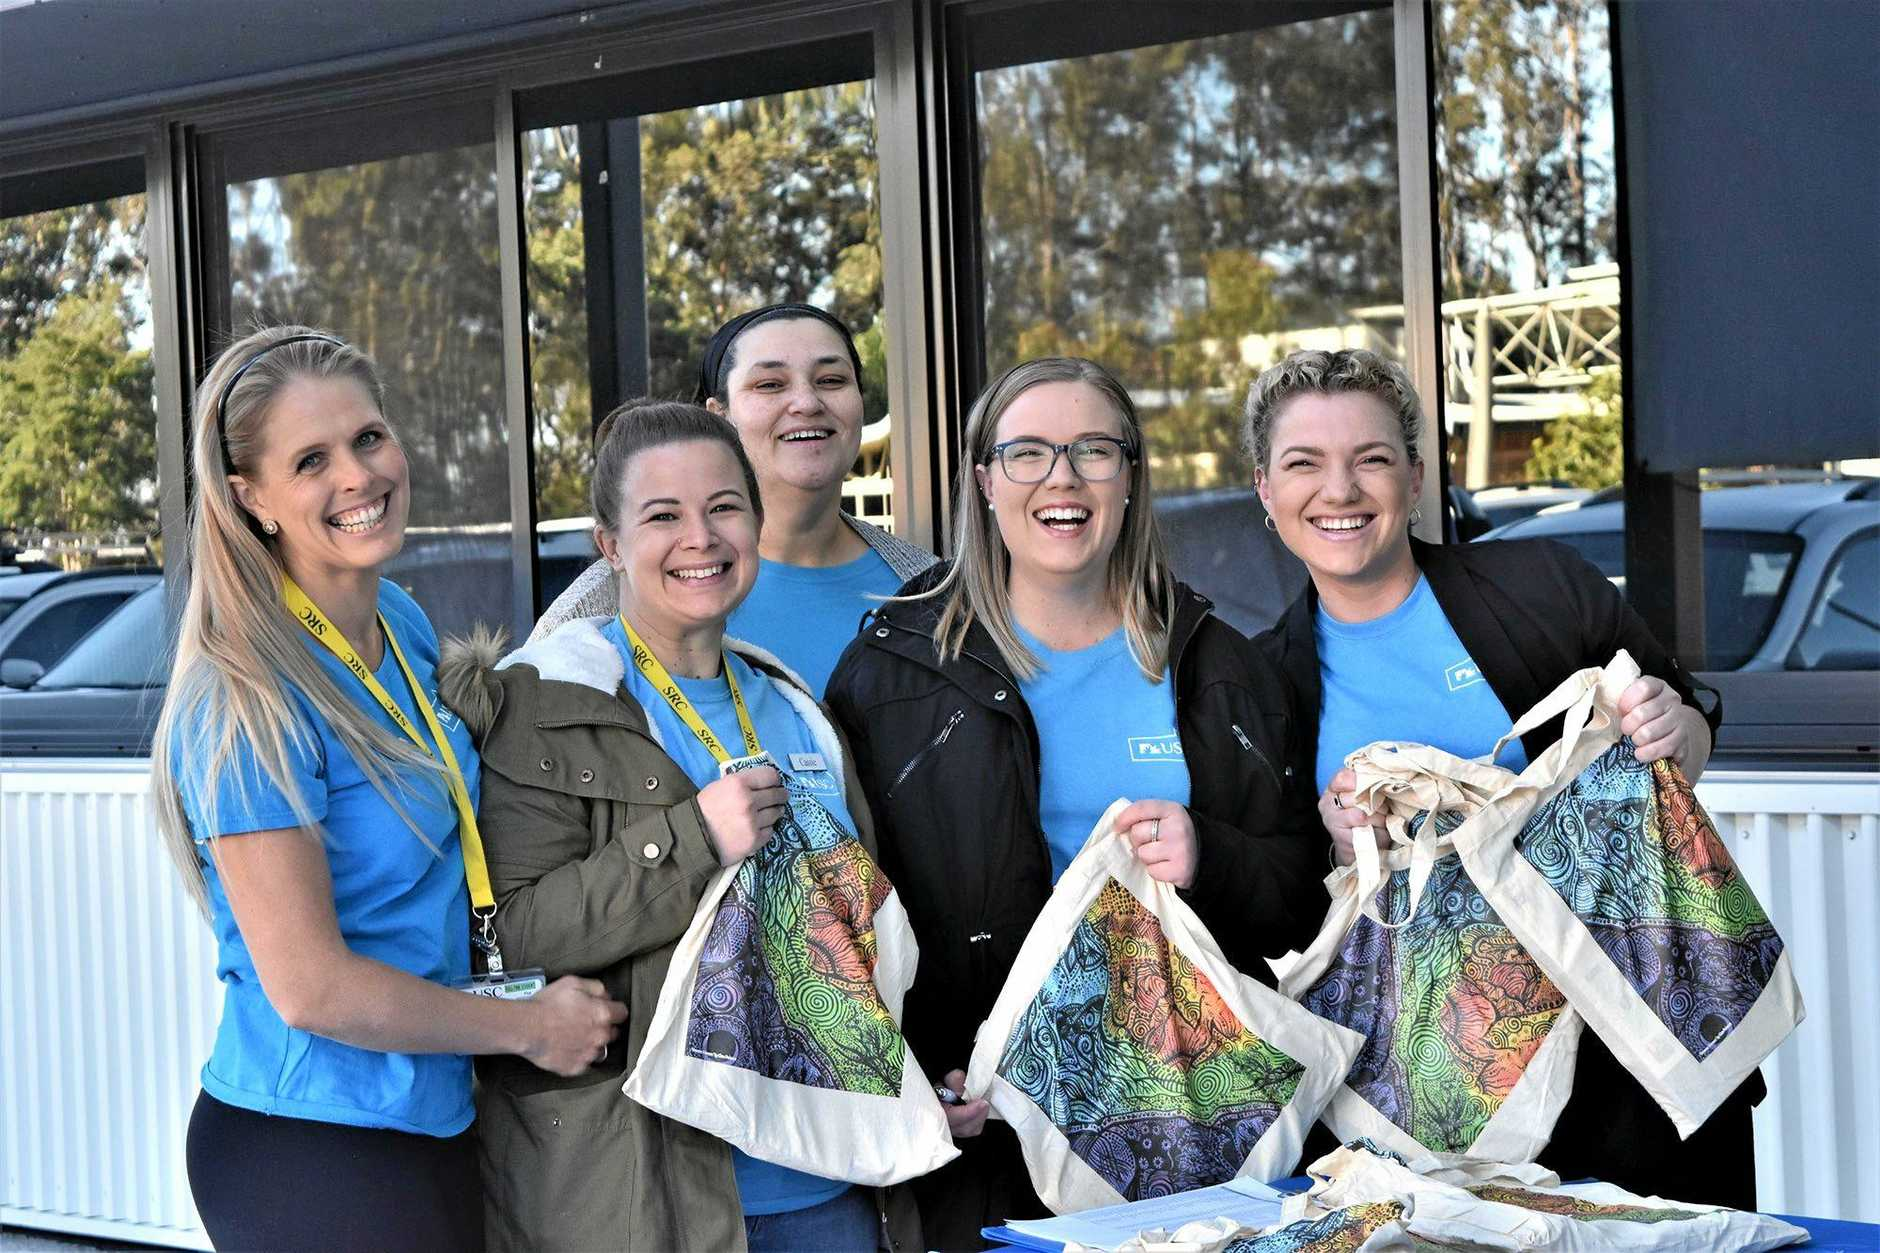 Volunteers help out at the Gympie USC campus open day